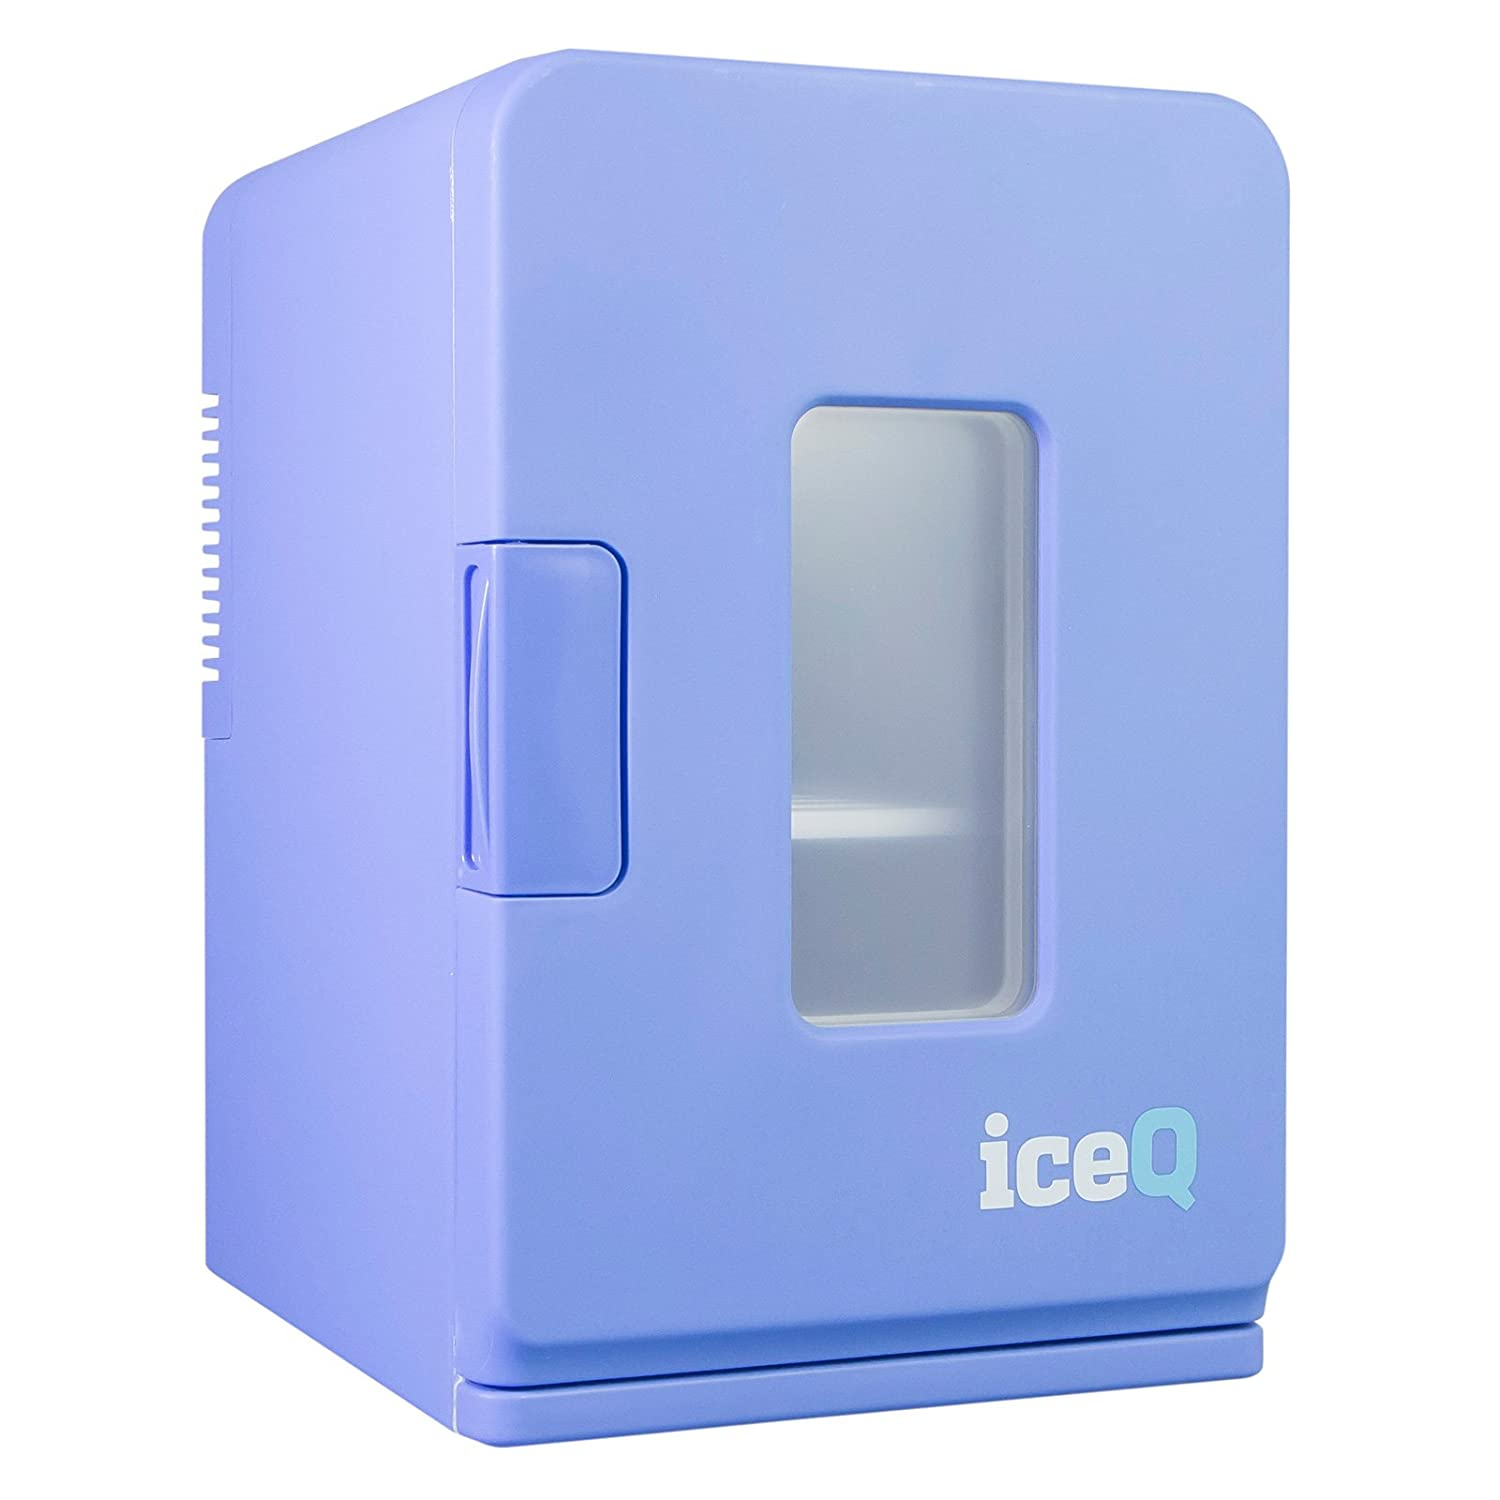 iceQ 15 Litre Deluxe Portable Mini Fridge With Window - Blue ICEQ15bw